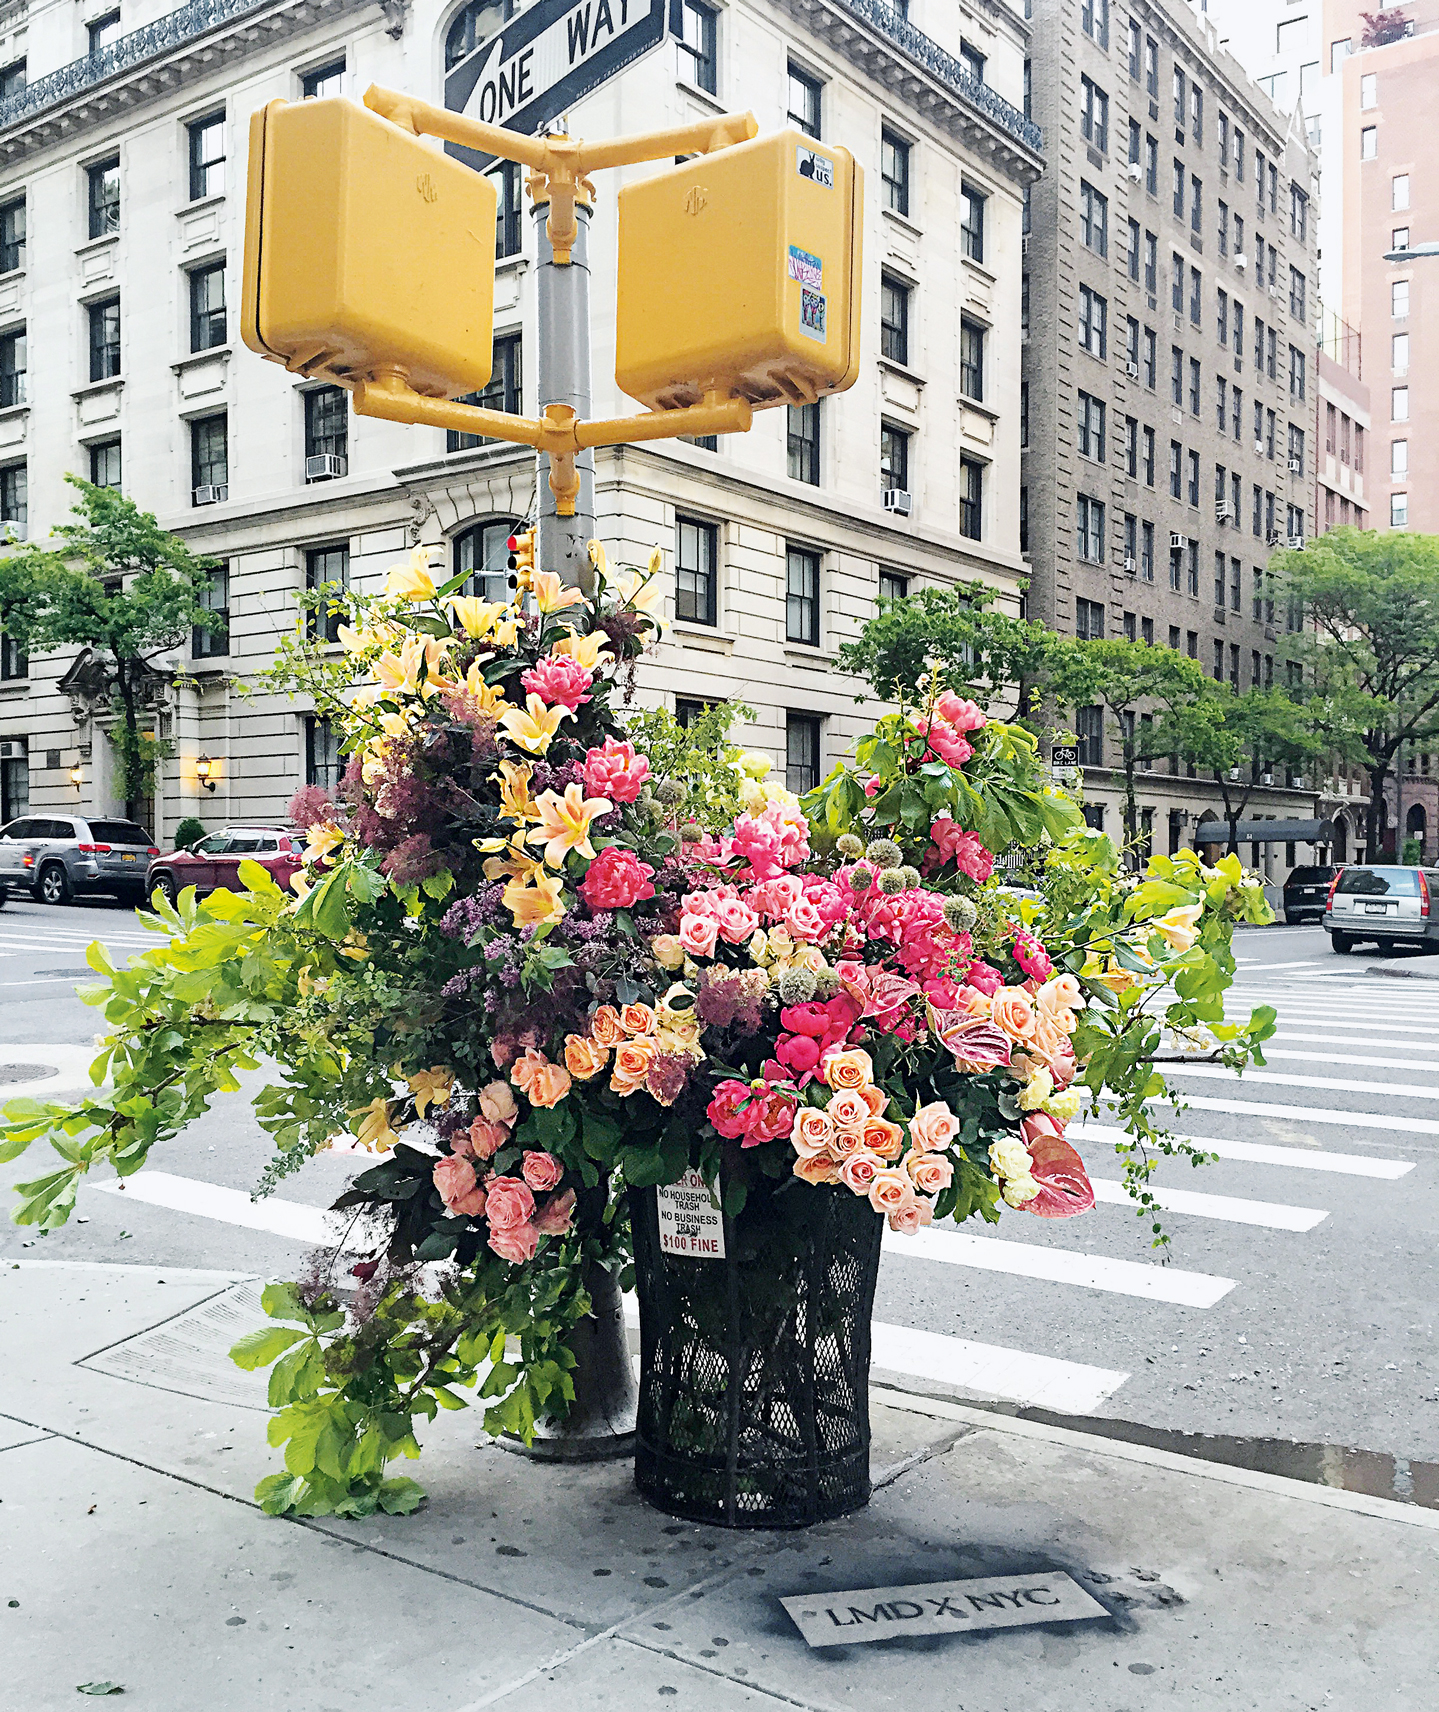 Trash Can Flower Flash Upper East Side Manhattan, NYC - Lewis Miller as featured in Blooms Contemporary Floral Design